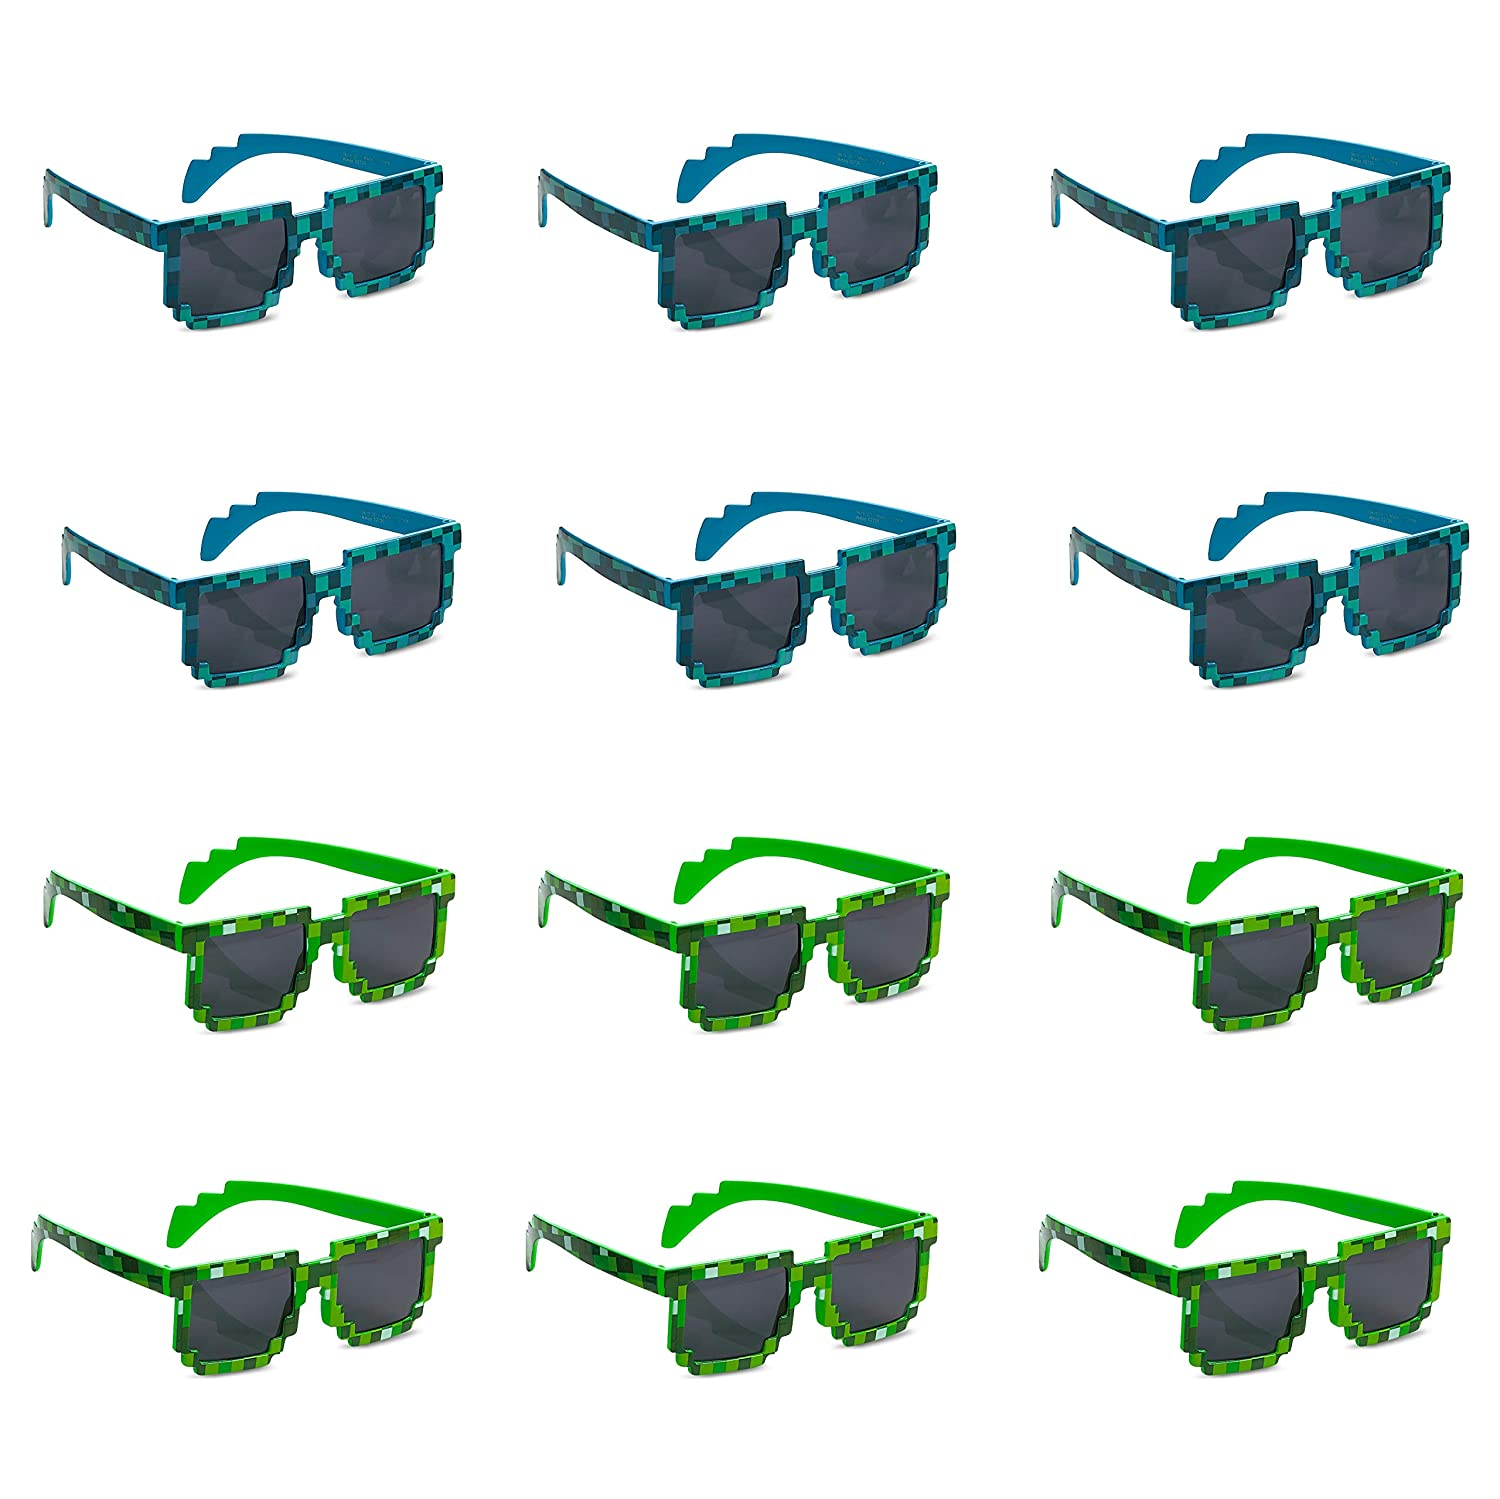 9d16bf7e301a Amazon.com  Katzco Pixel Sunglasses